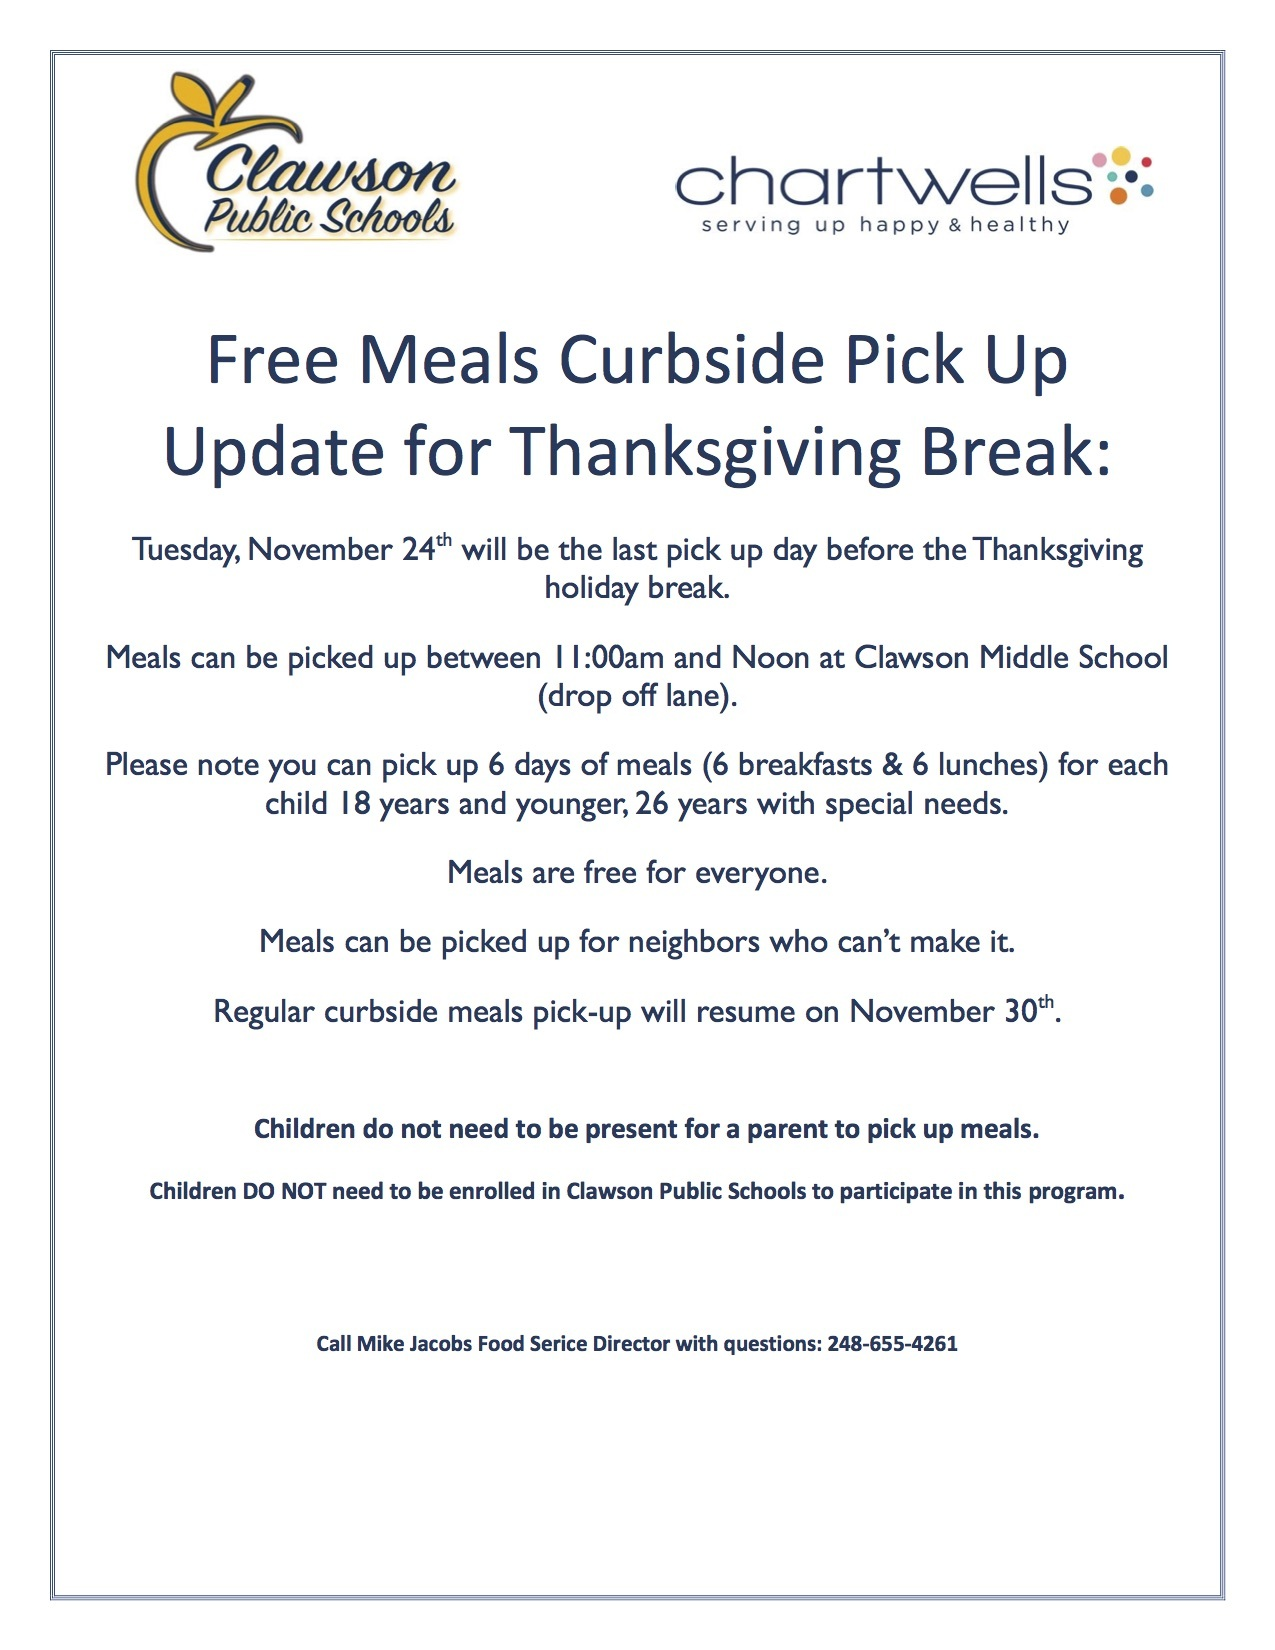 Free Meals Curbside Pick Up Update for Thanksgiving Break: Tuesday, November 24th 11:00am-noon.